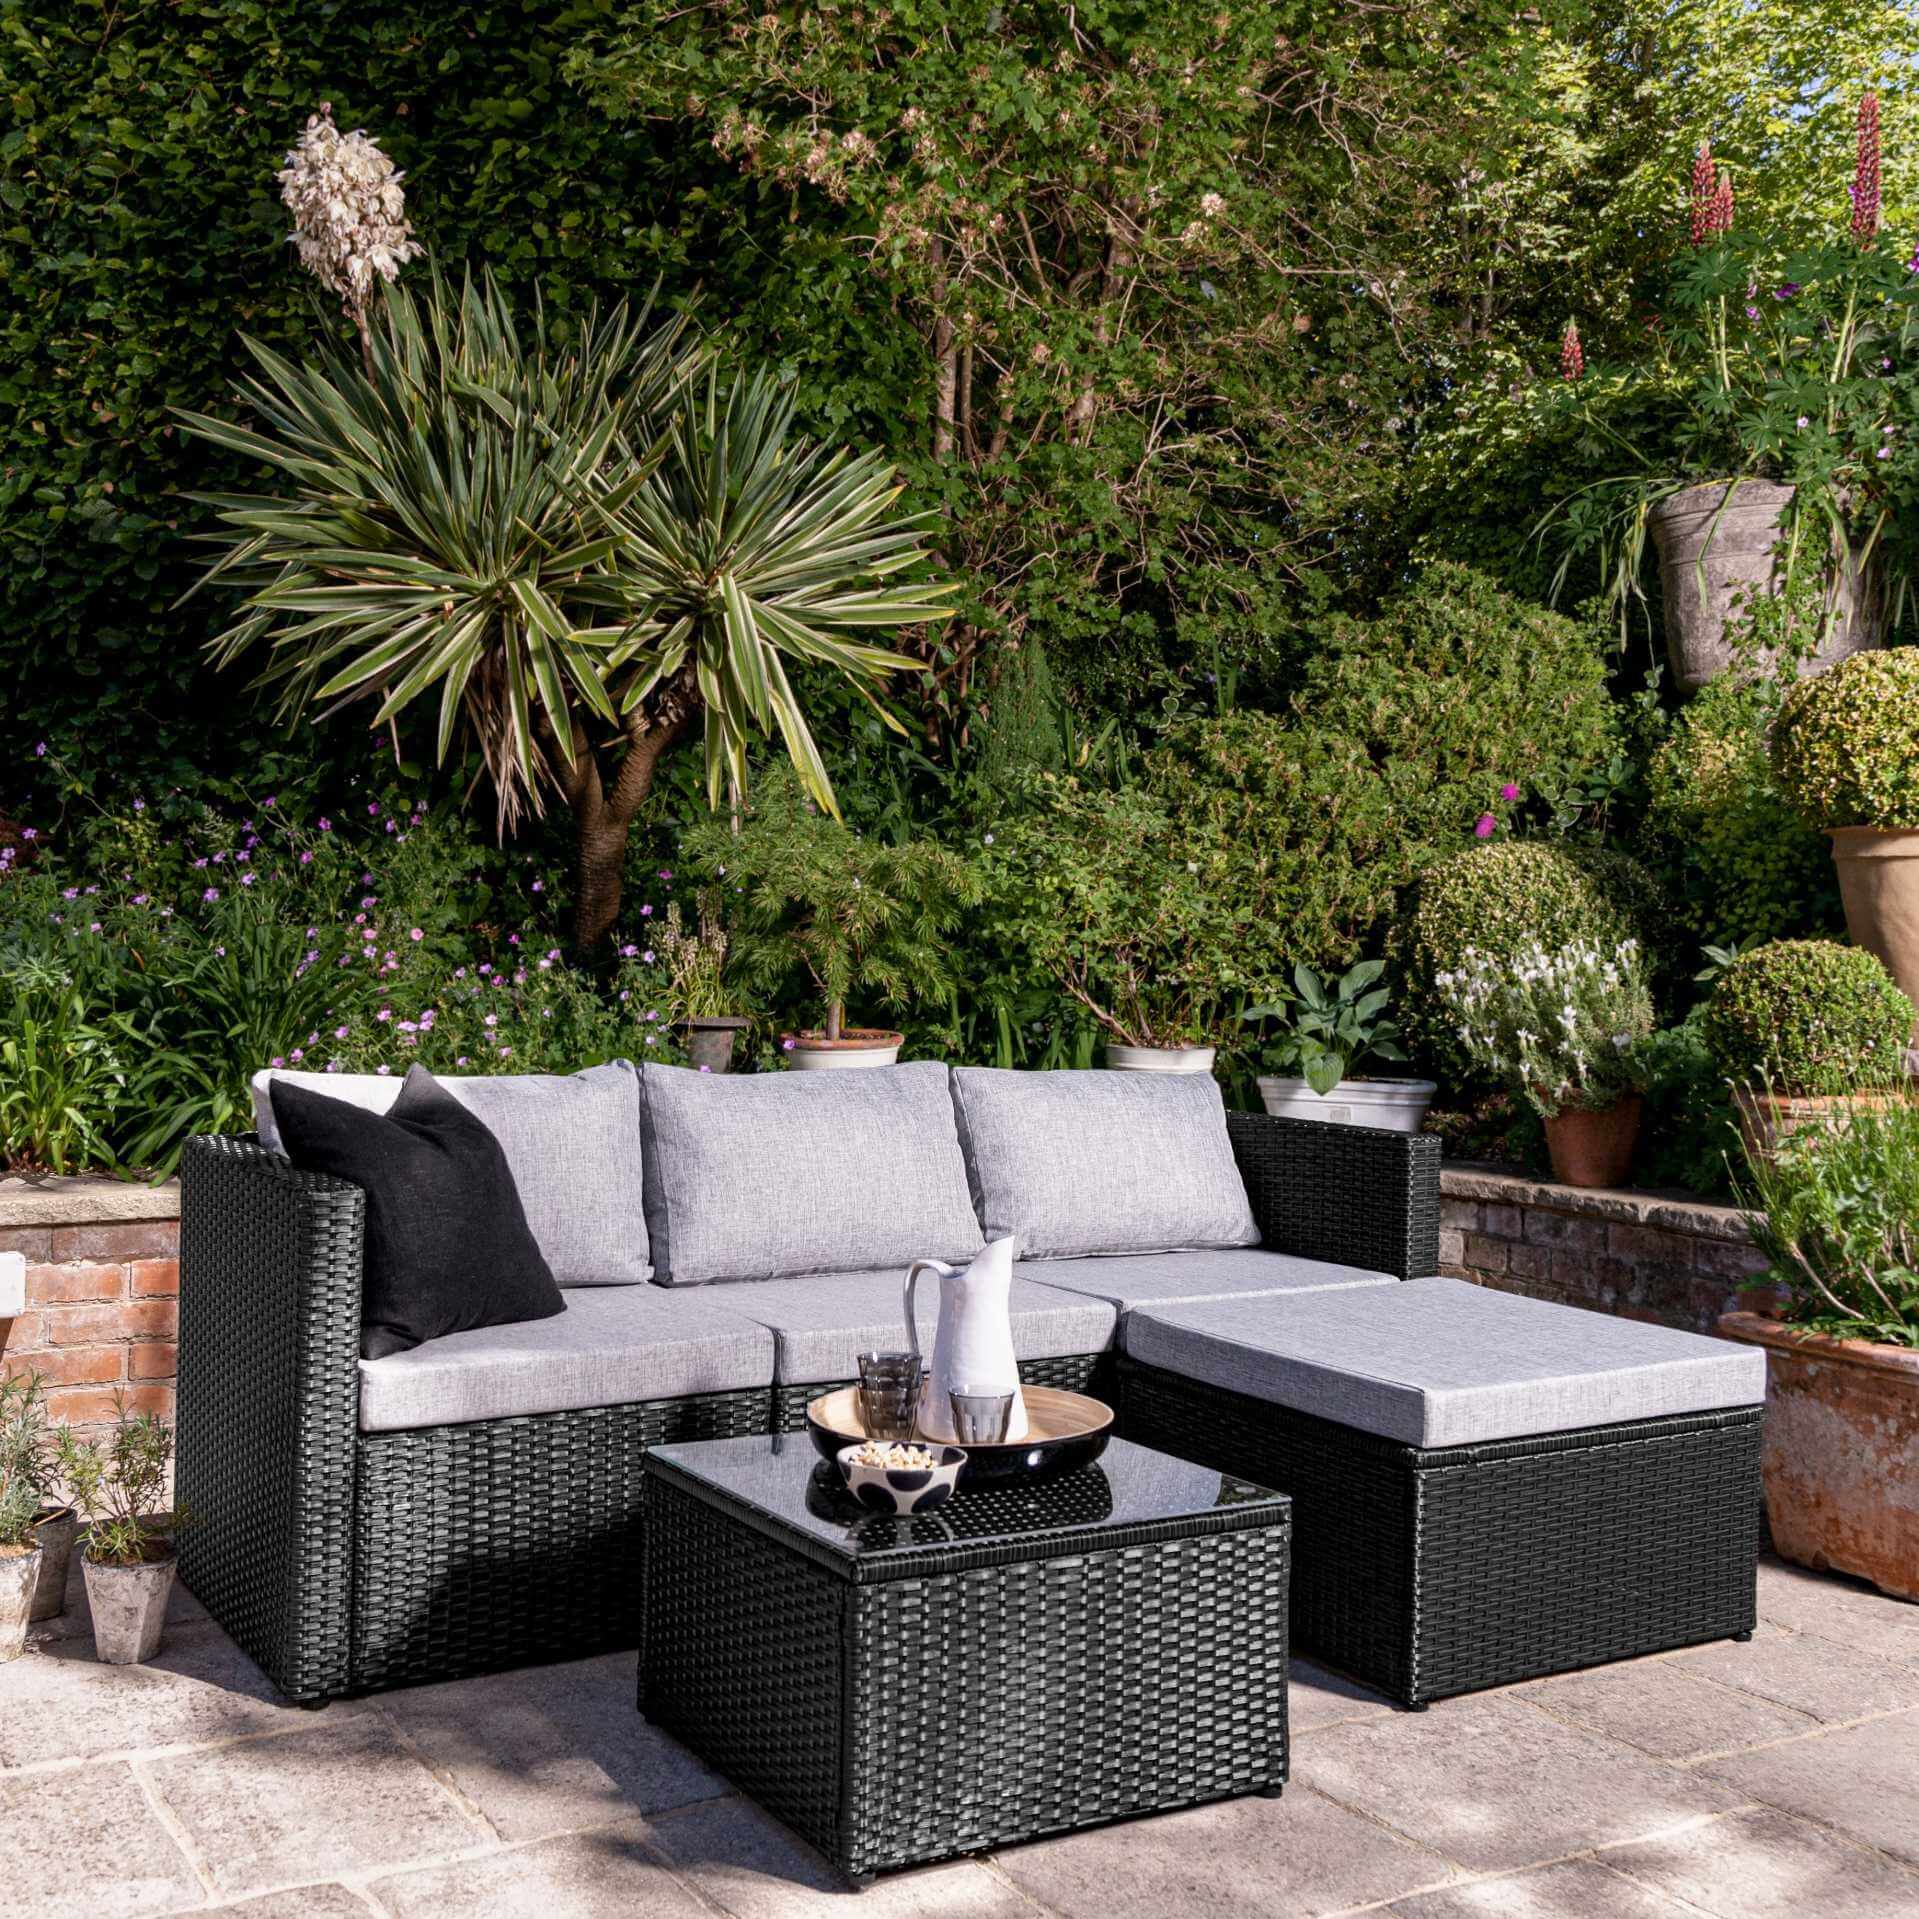 4 Seater Rattan Corner Sofa Set - Black Weave